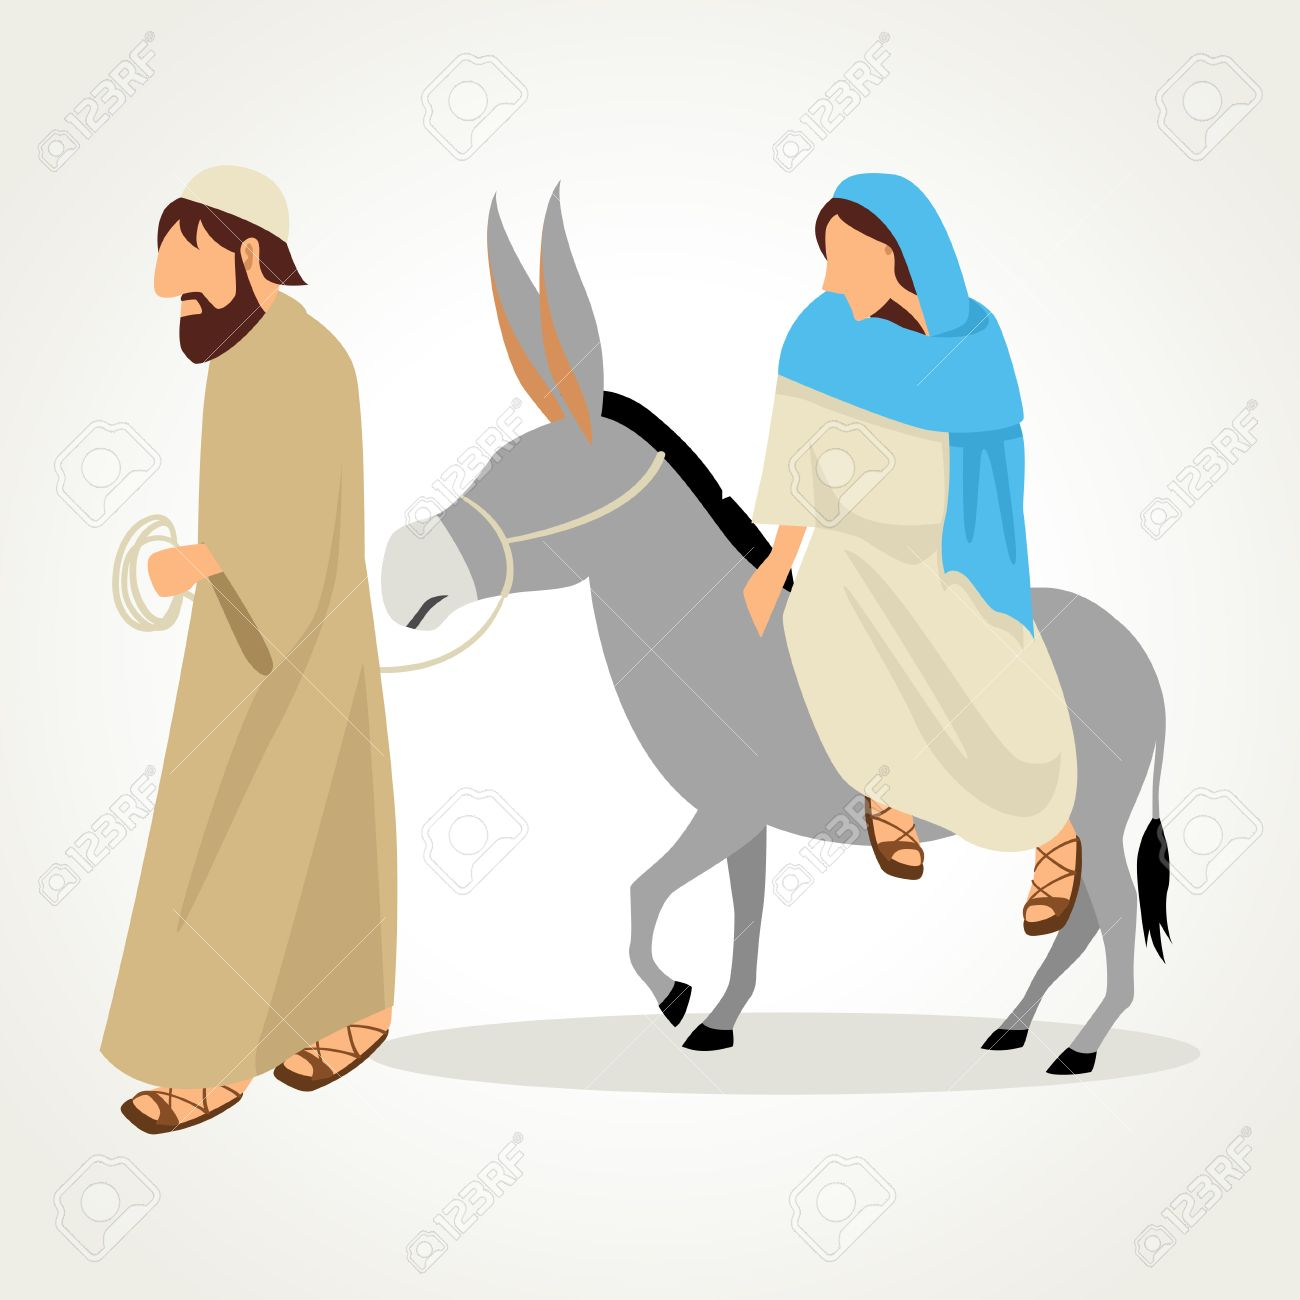 Simple Cartoon Of Mary And Joseph Journey To Bethlehem For Royalty Free Cliparts Vectors And Stock Illustration Image 50934217